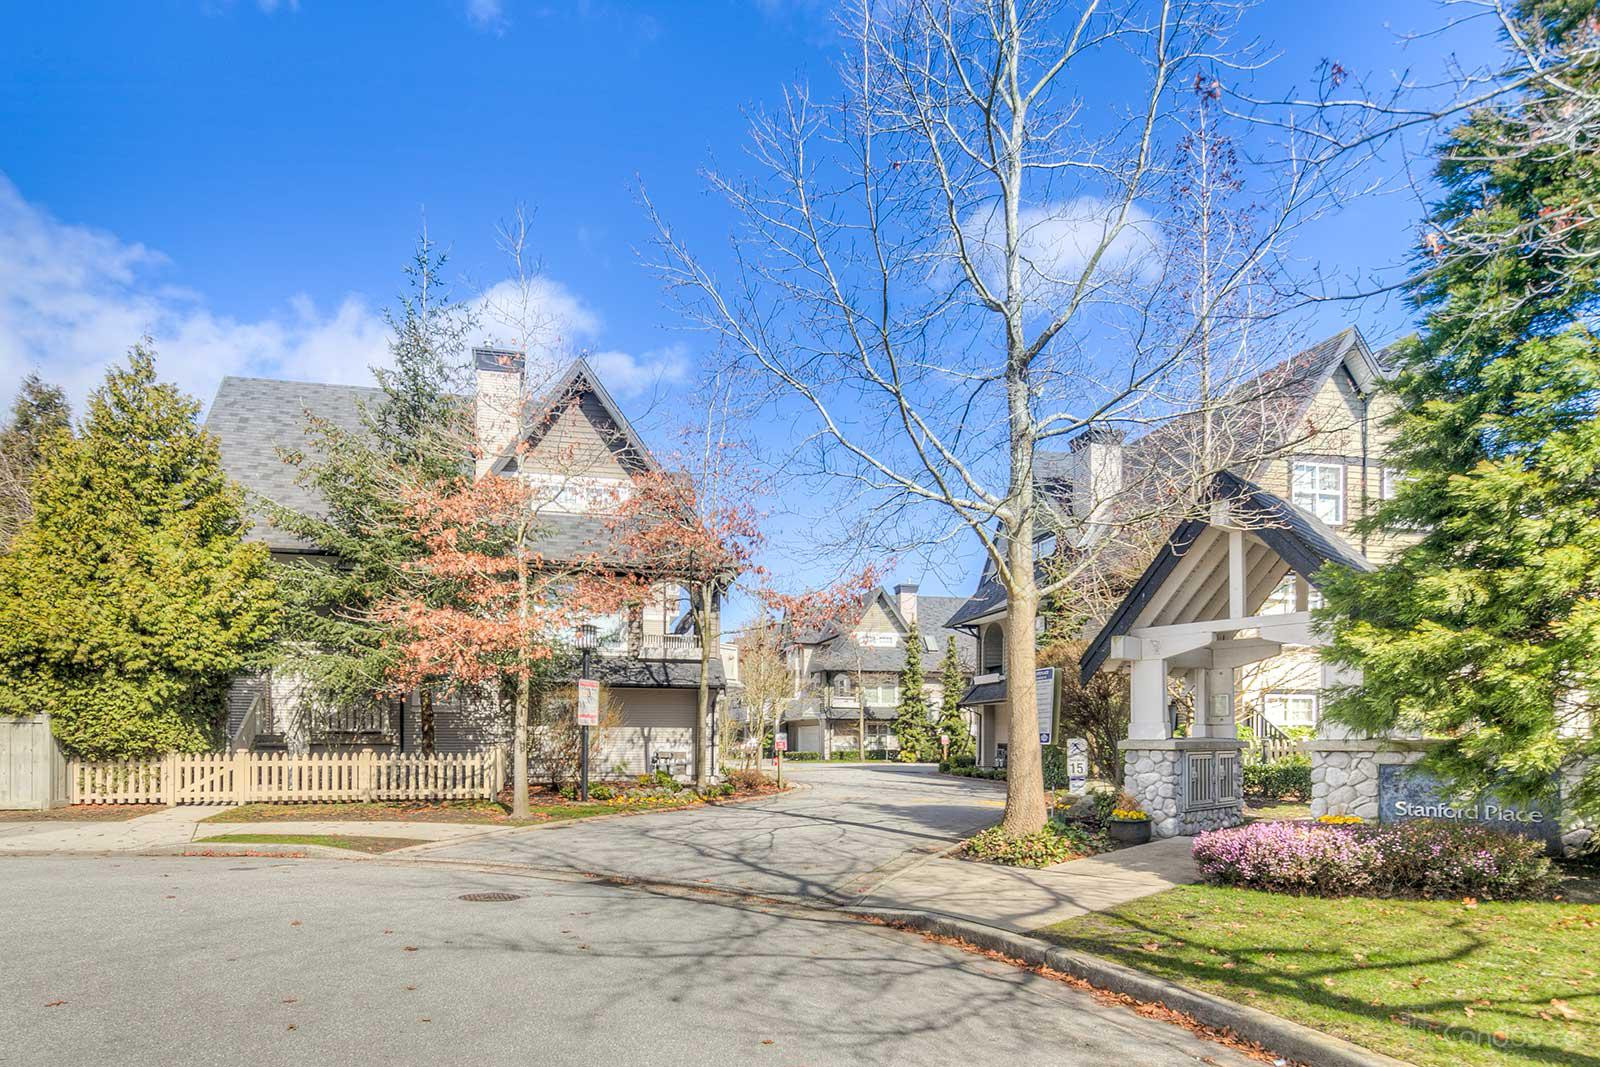 Stanford Place at 6888 Robson Dr, Richmond 0